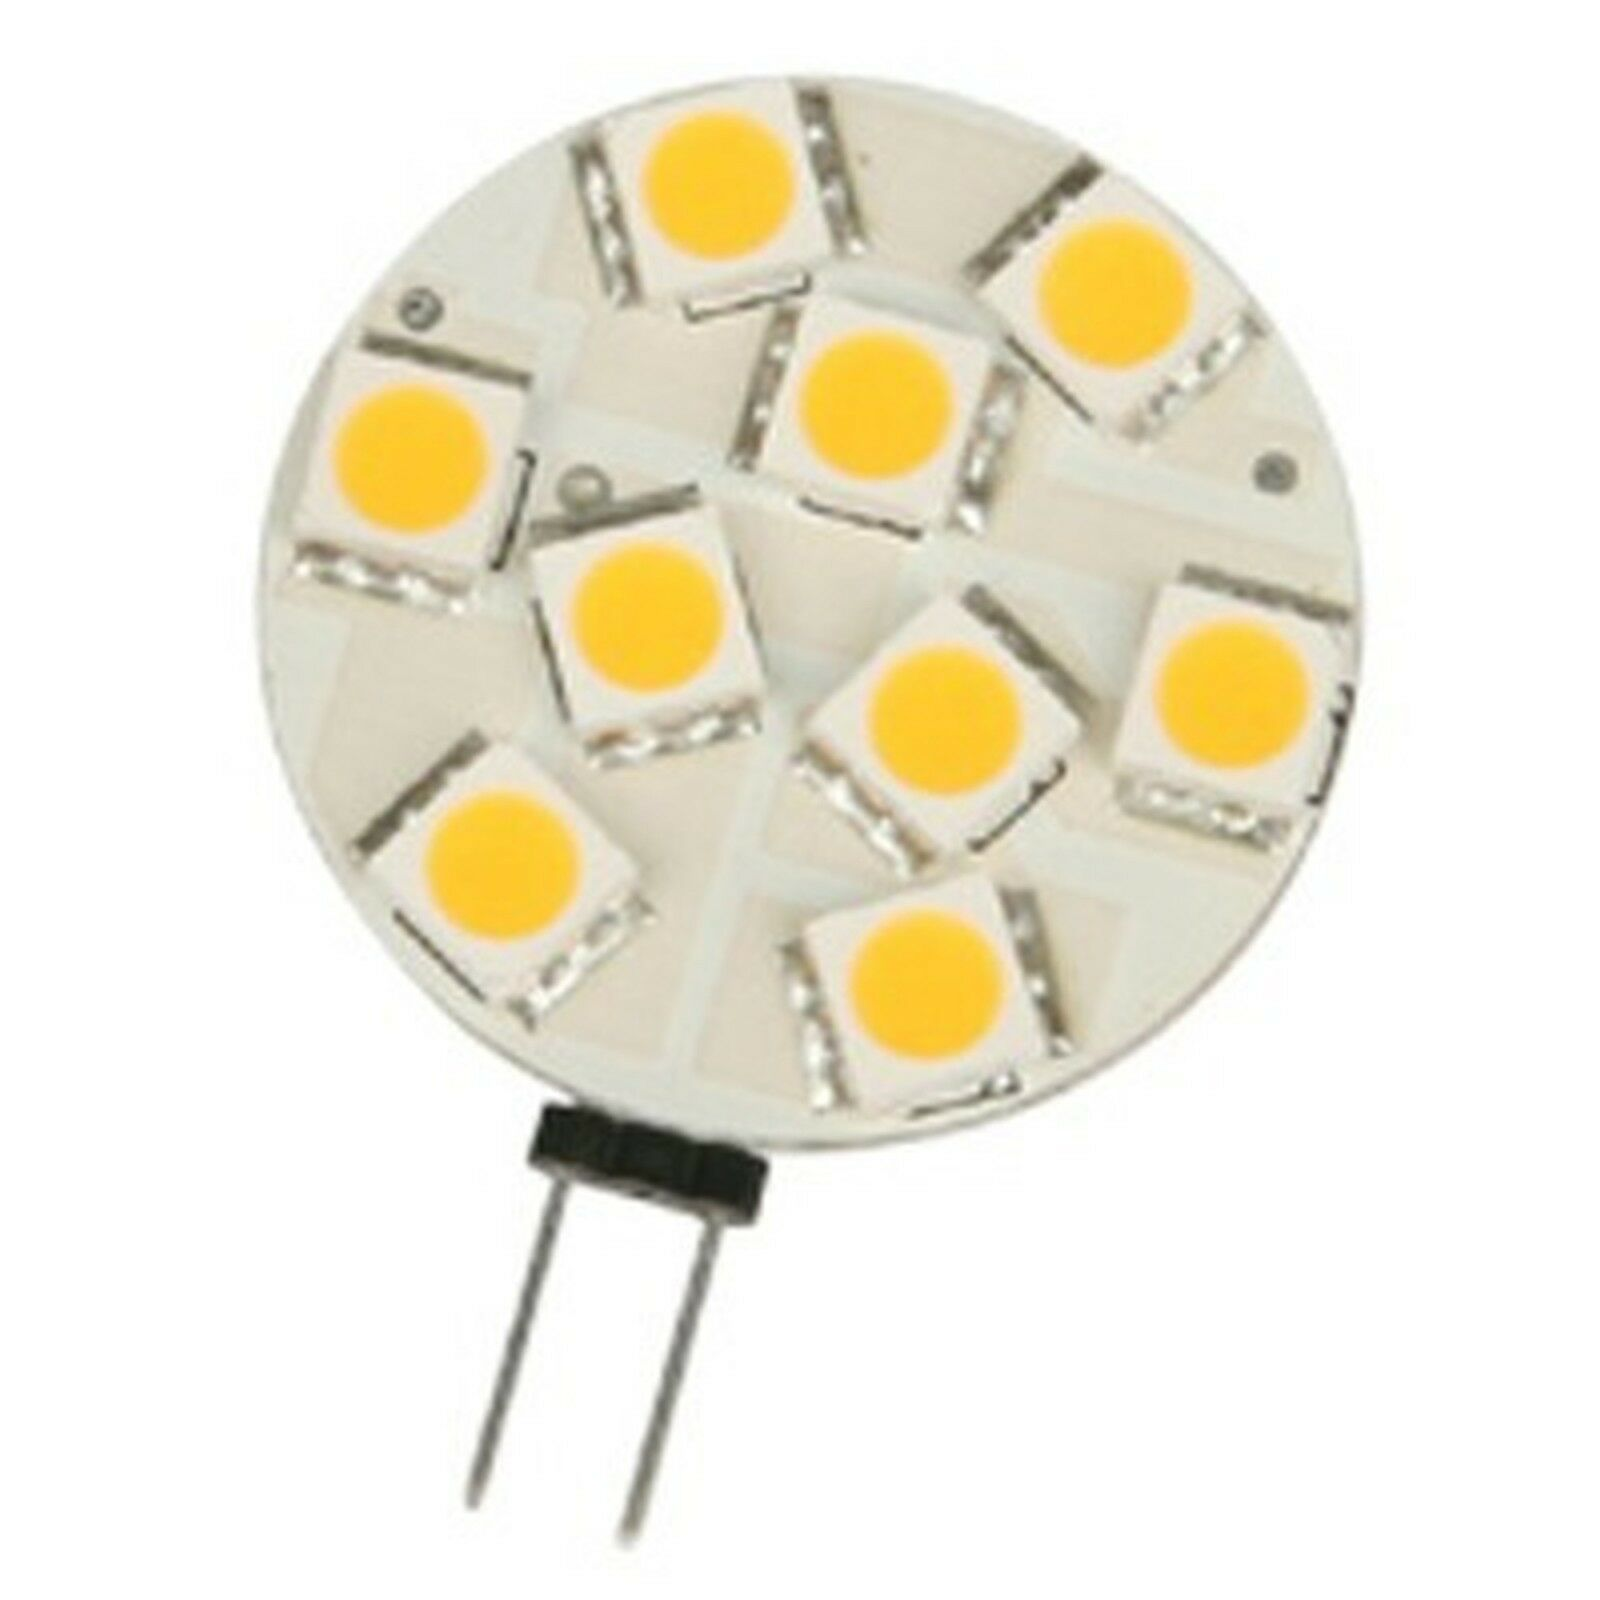 Ctl 2w hockey puck lamp 9 led 12v g4 base warm whi ebay picture 1 of 1 mozeypictures Images